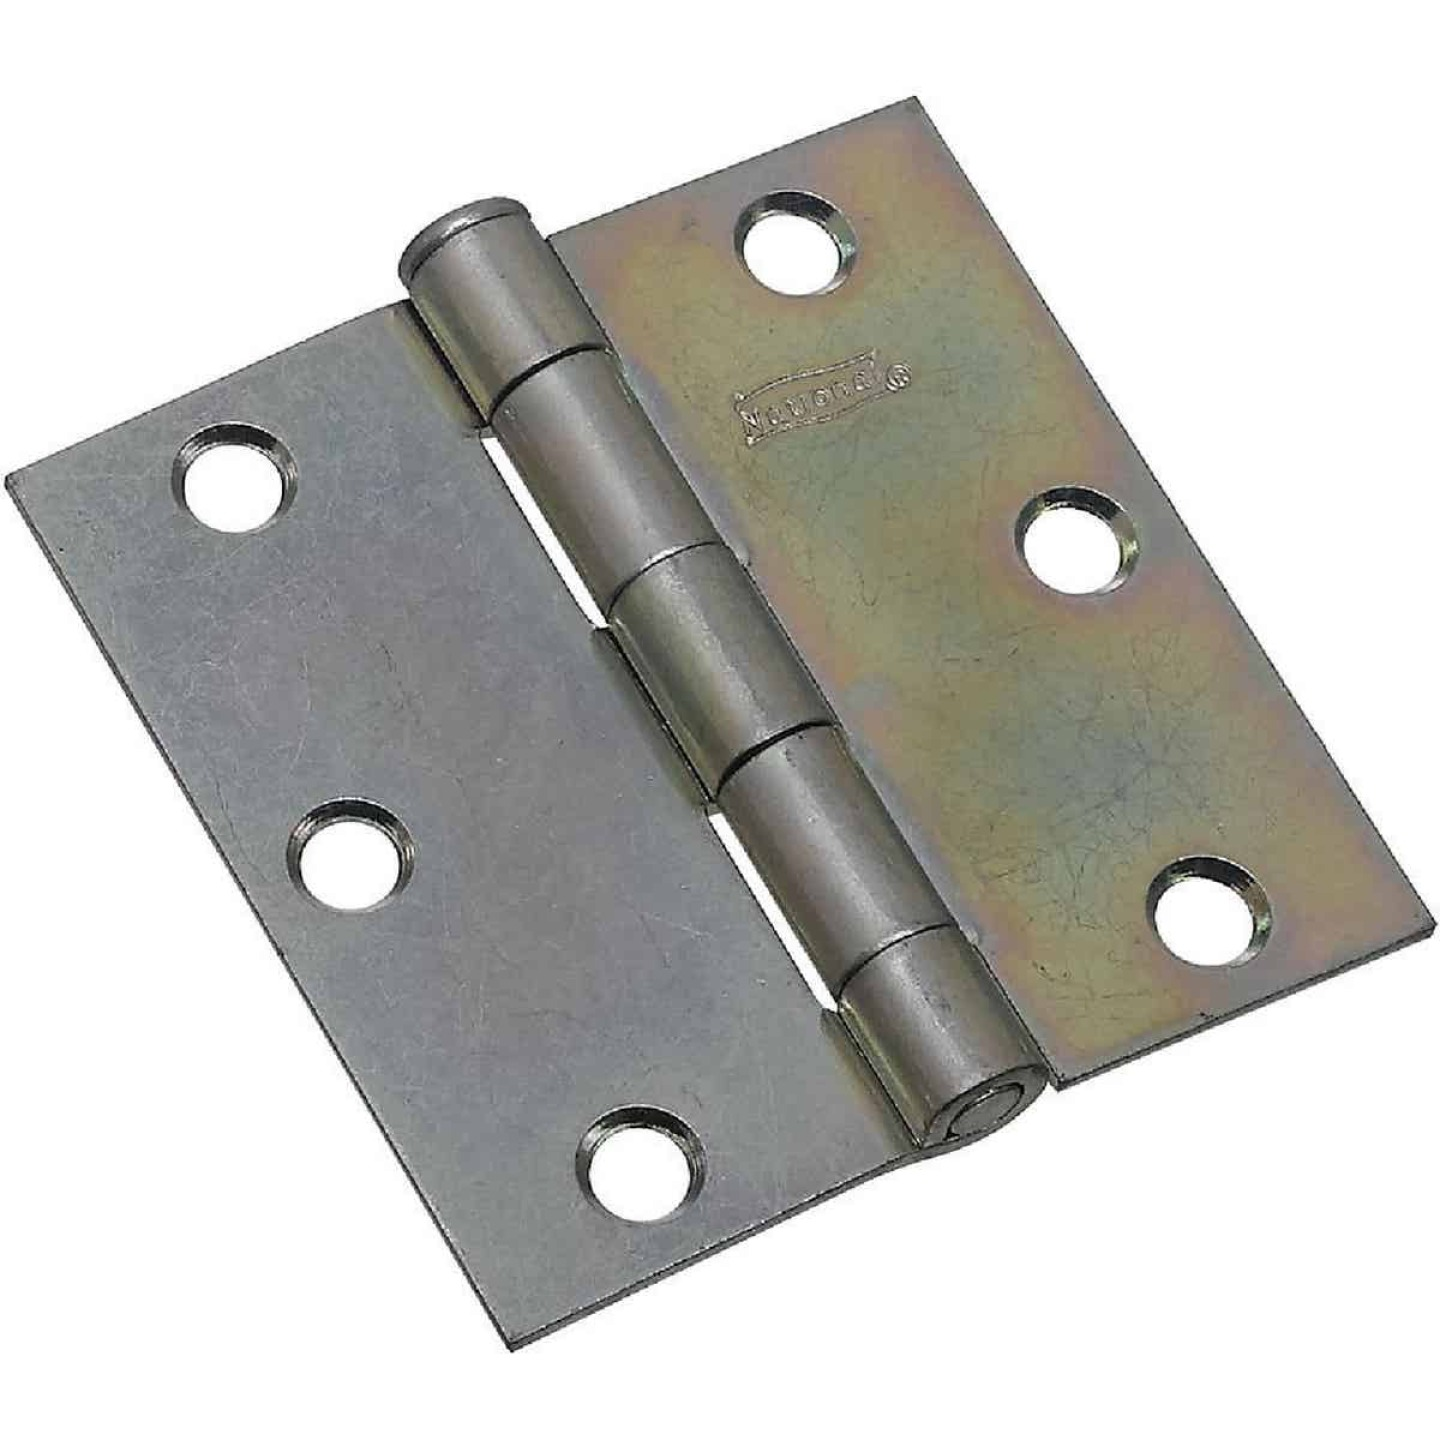 National 3 In. Square Zinc Plated Steel Broad Door Hinge (2-Pack) Image 1